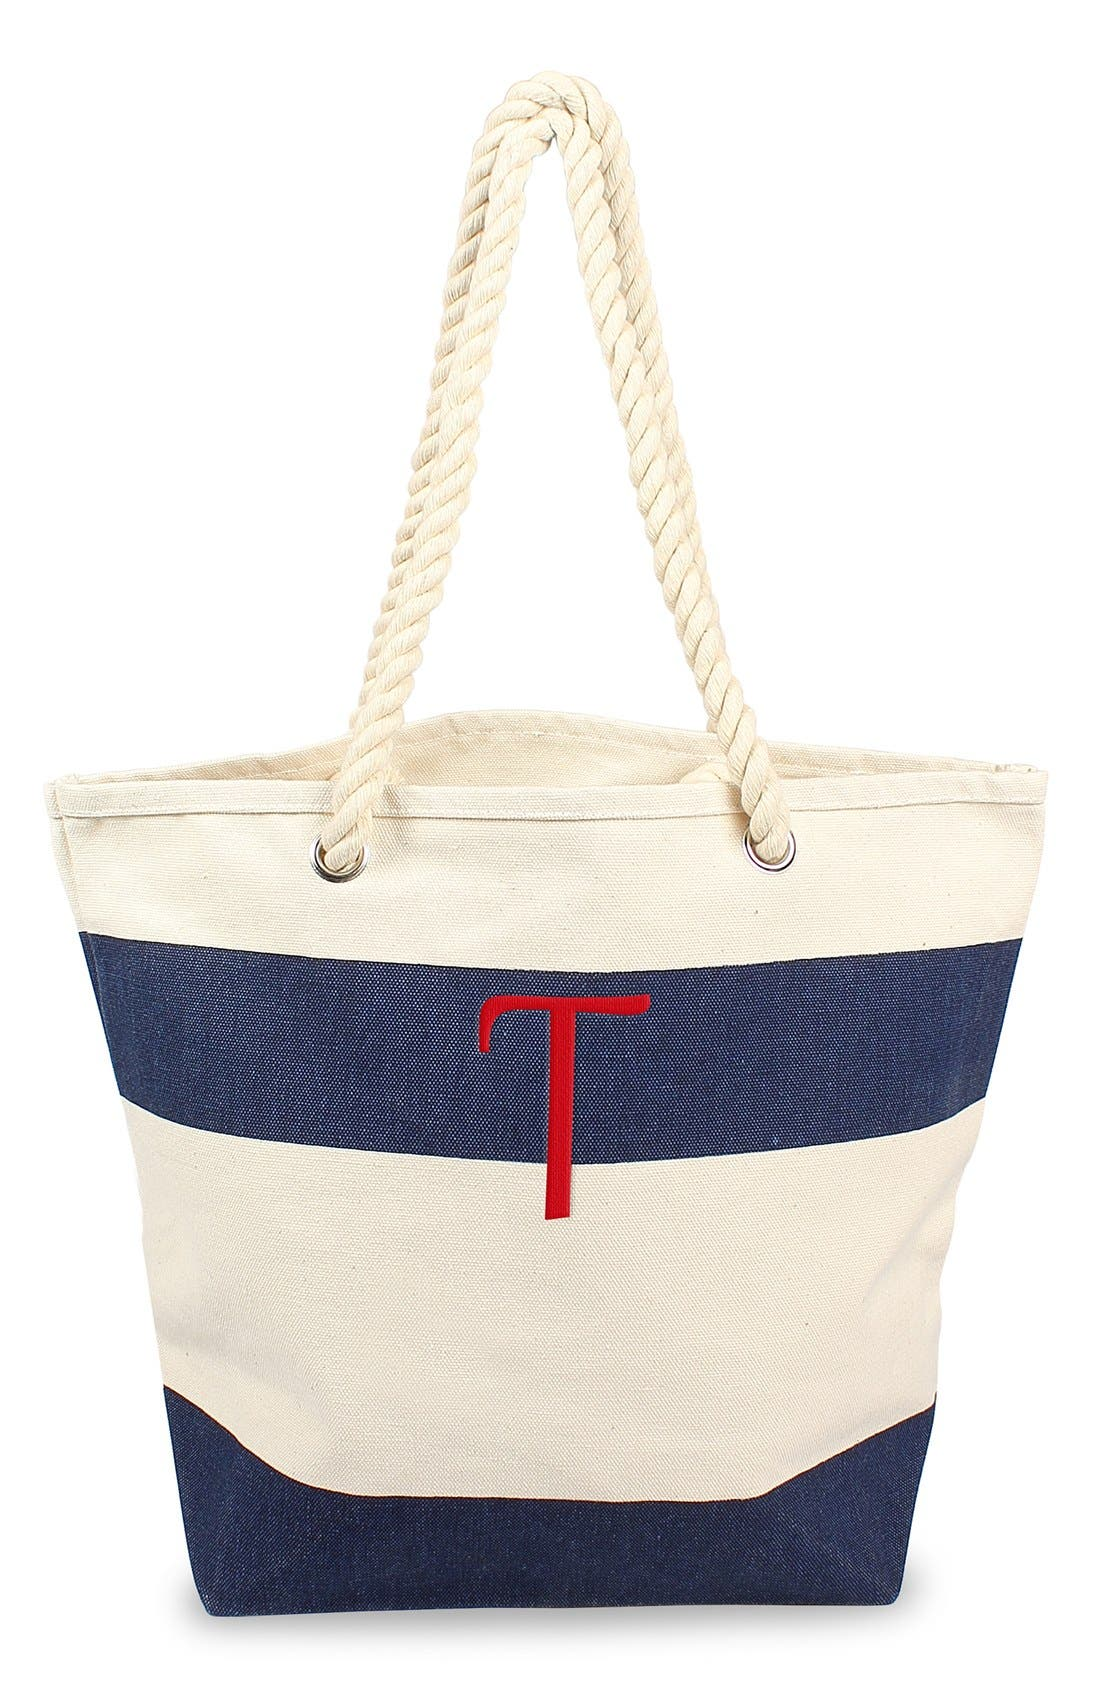 Cathy's Concepts Monogram Stripe Canvas Tote